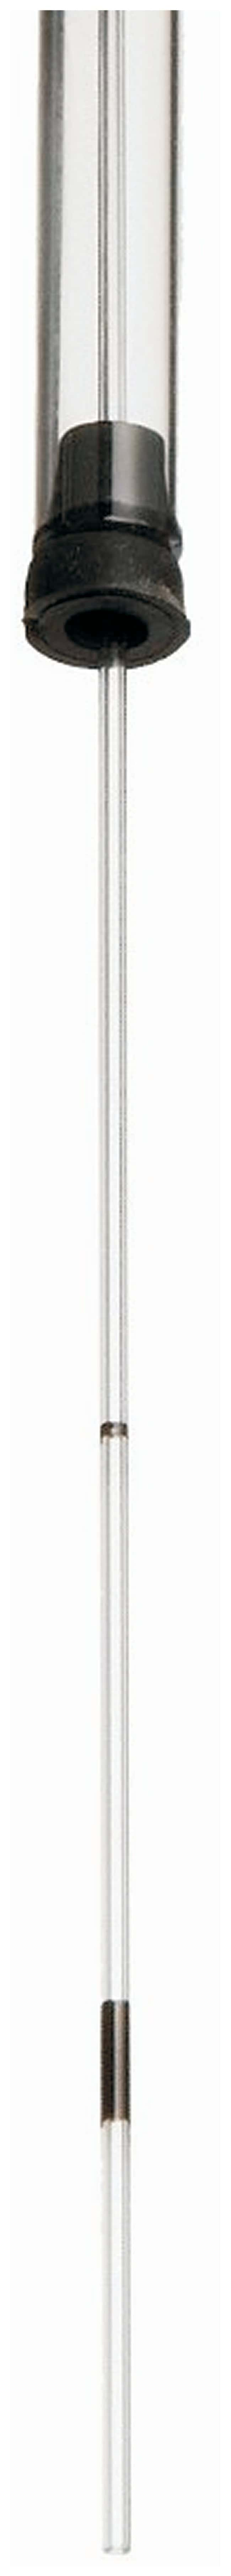 DWK Life SciencesKimble Disposable Micro Capillary Pipets:Pipettes:Microcapillary